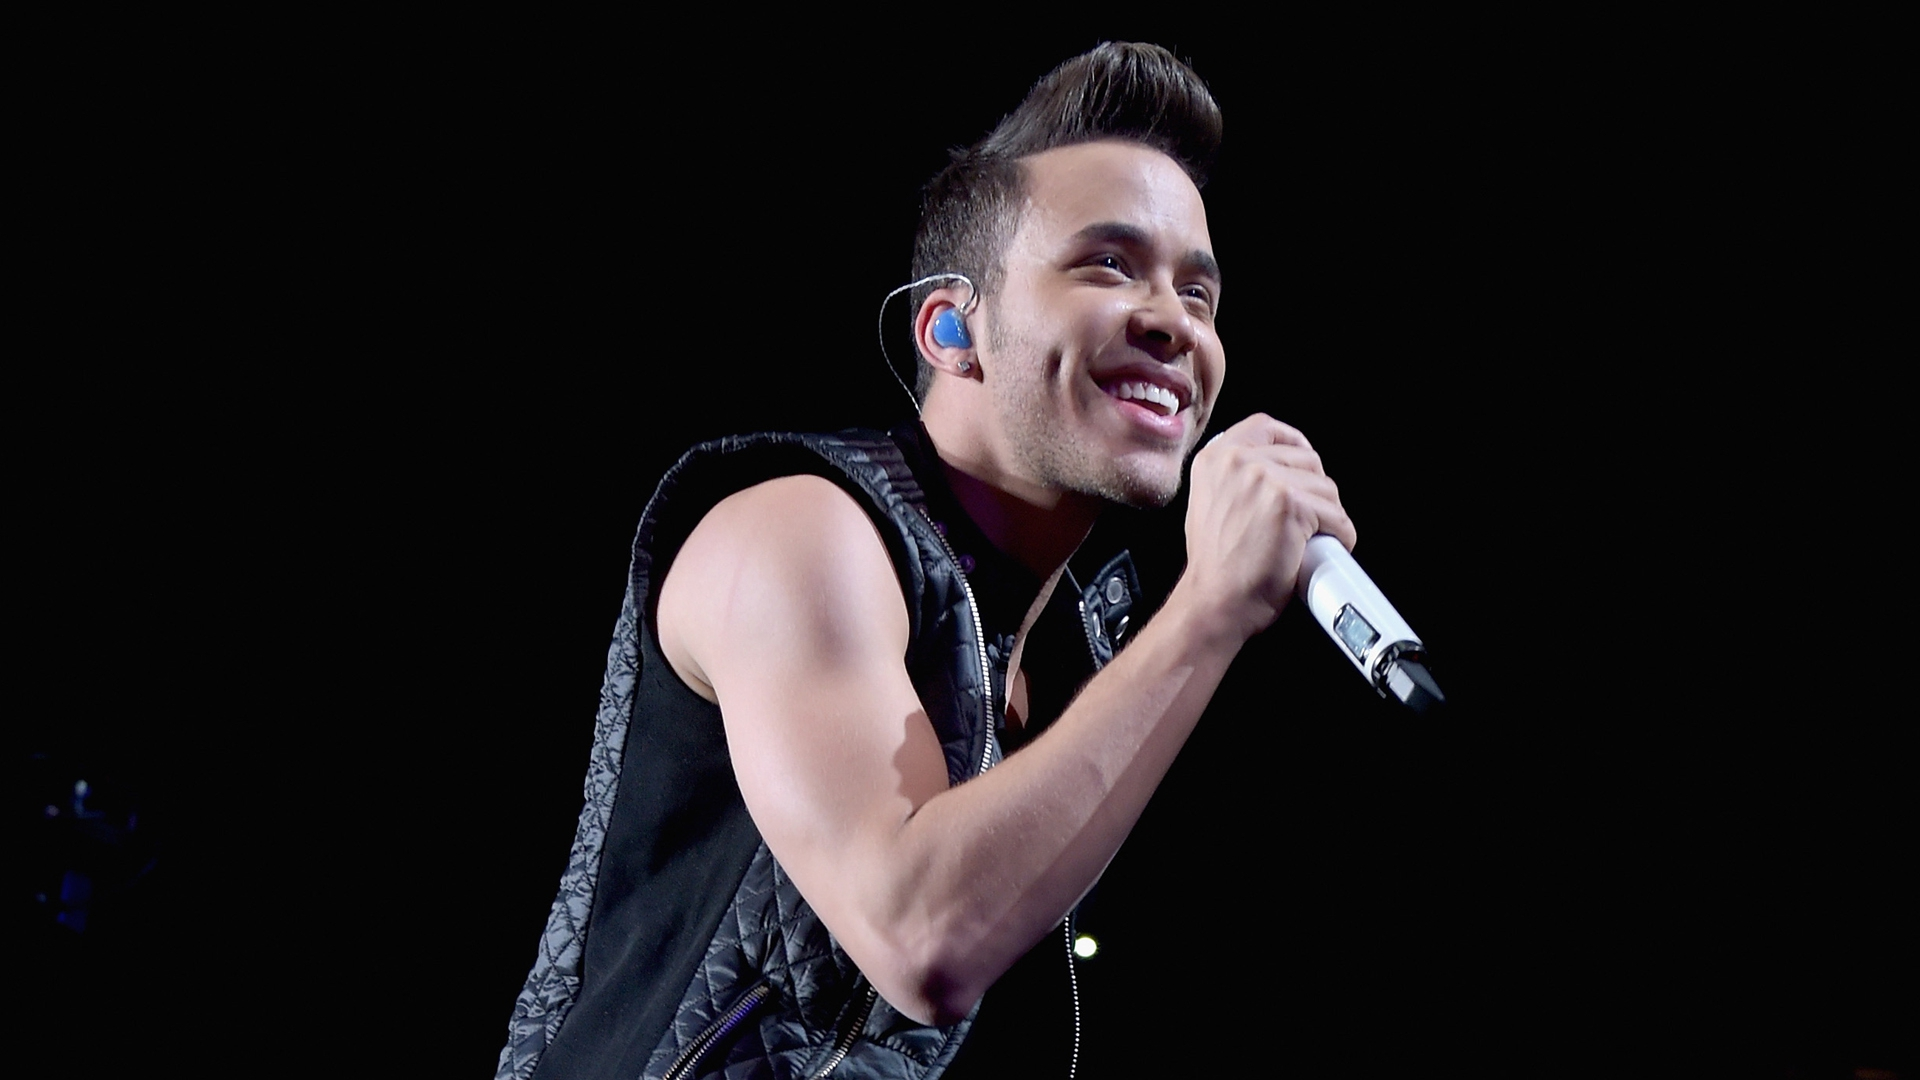 Prince royce wallpapers images photos pictures backgrounds - Prince wallpaper ...